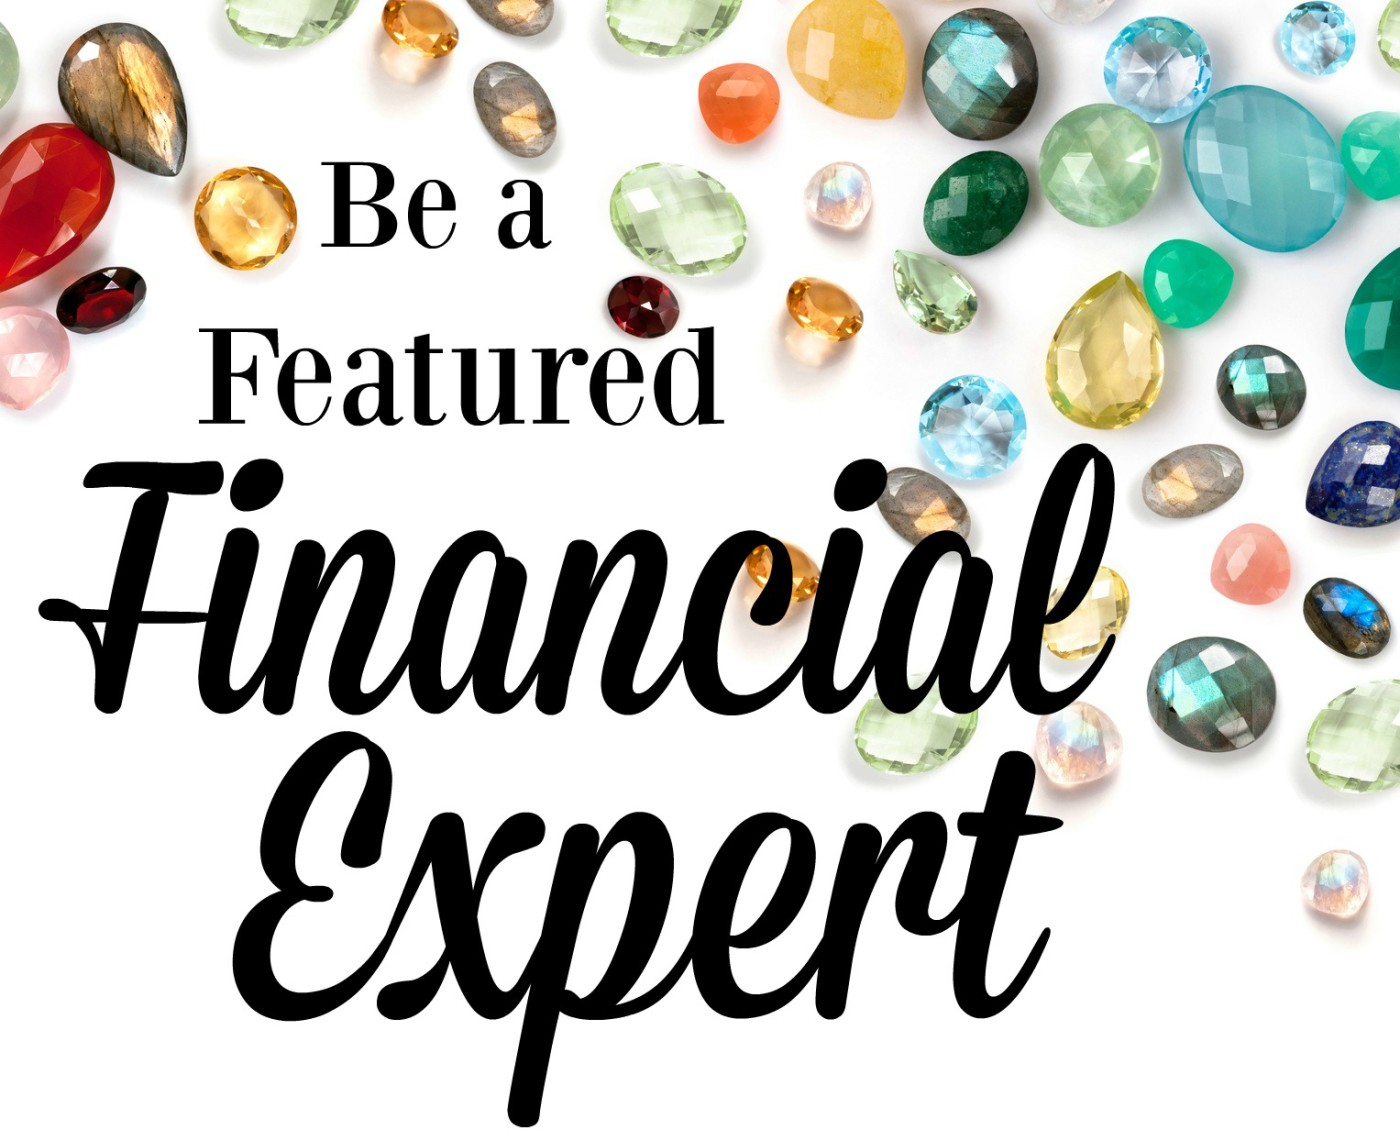 Be a Financial Expert